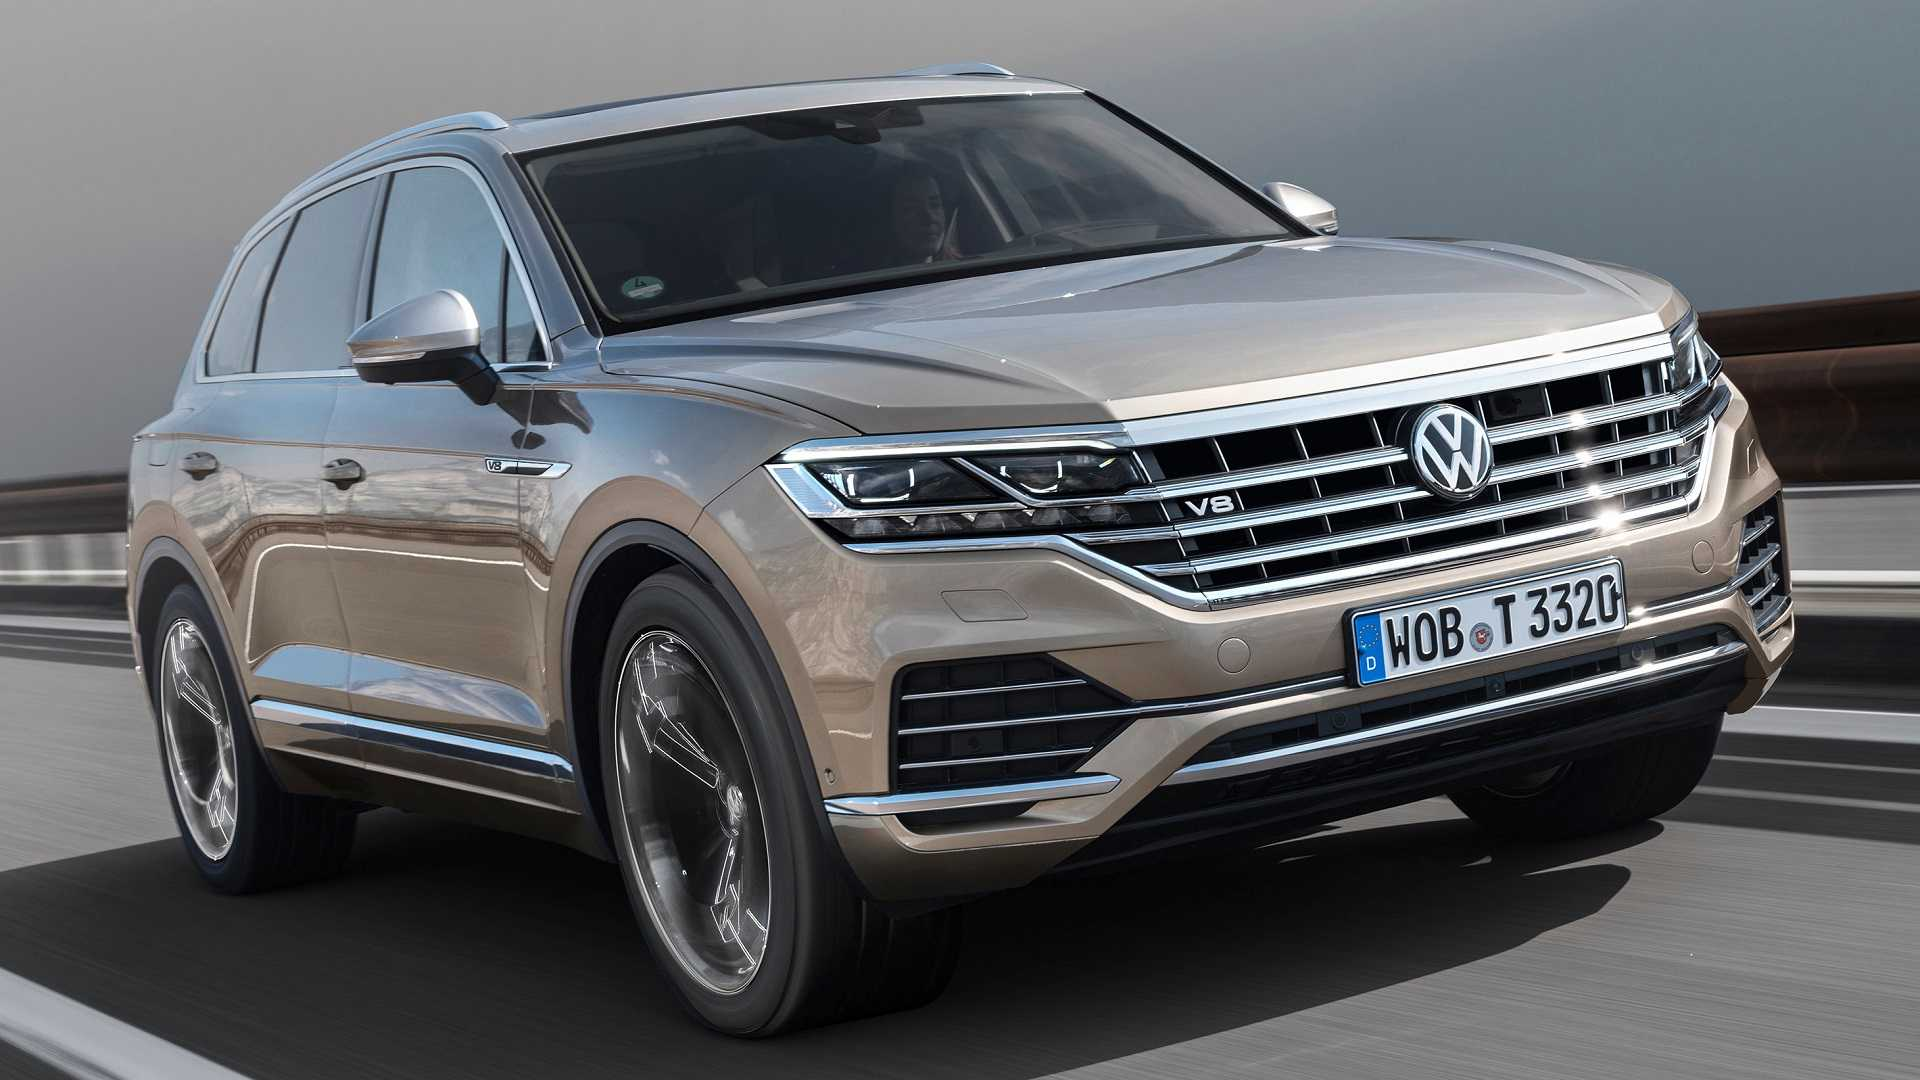 49 New Volkswagen 2019 Touareg Price Overview